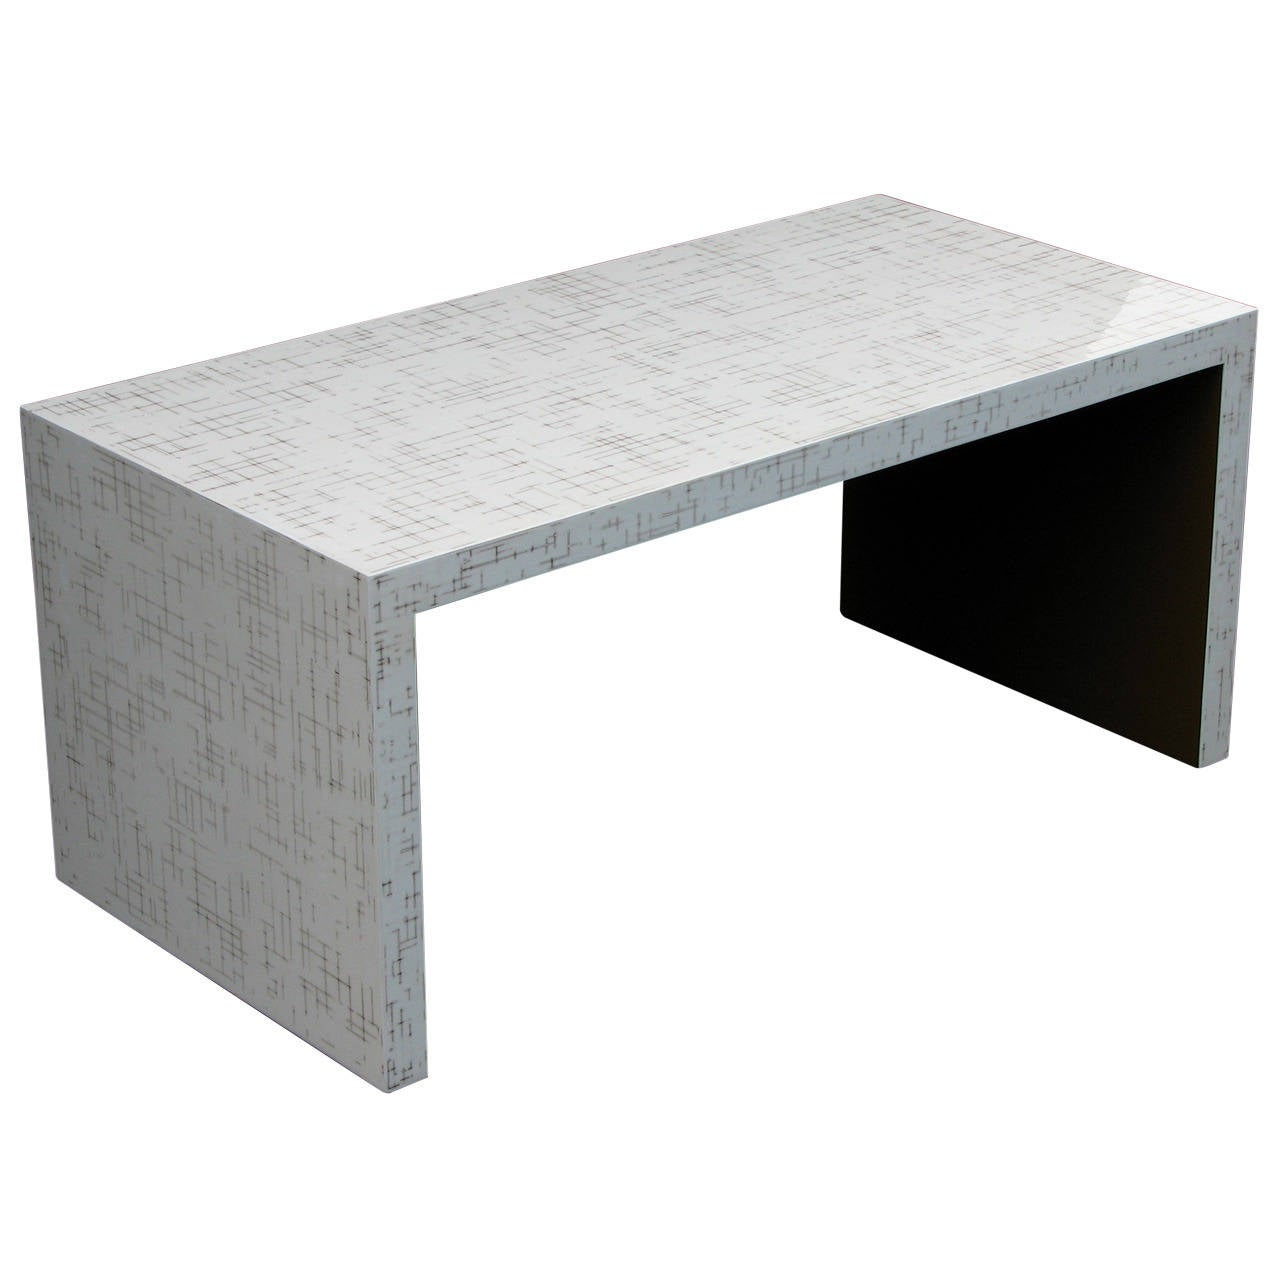 Dusted Lacquer Waterfall Table For Sale at 1stdibs